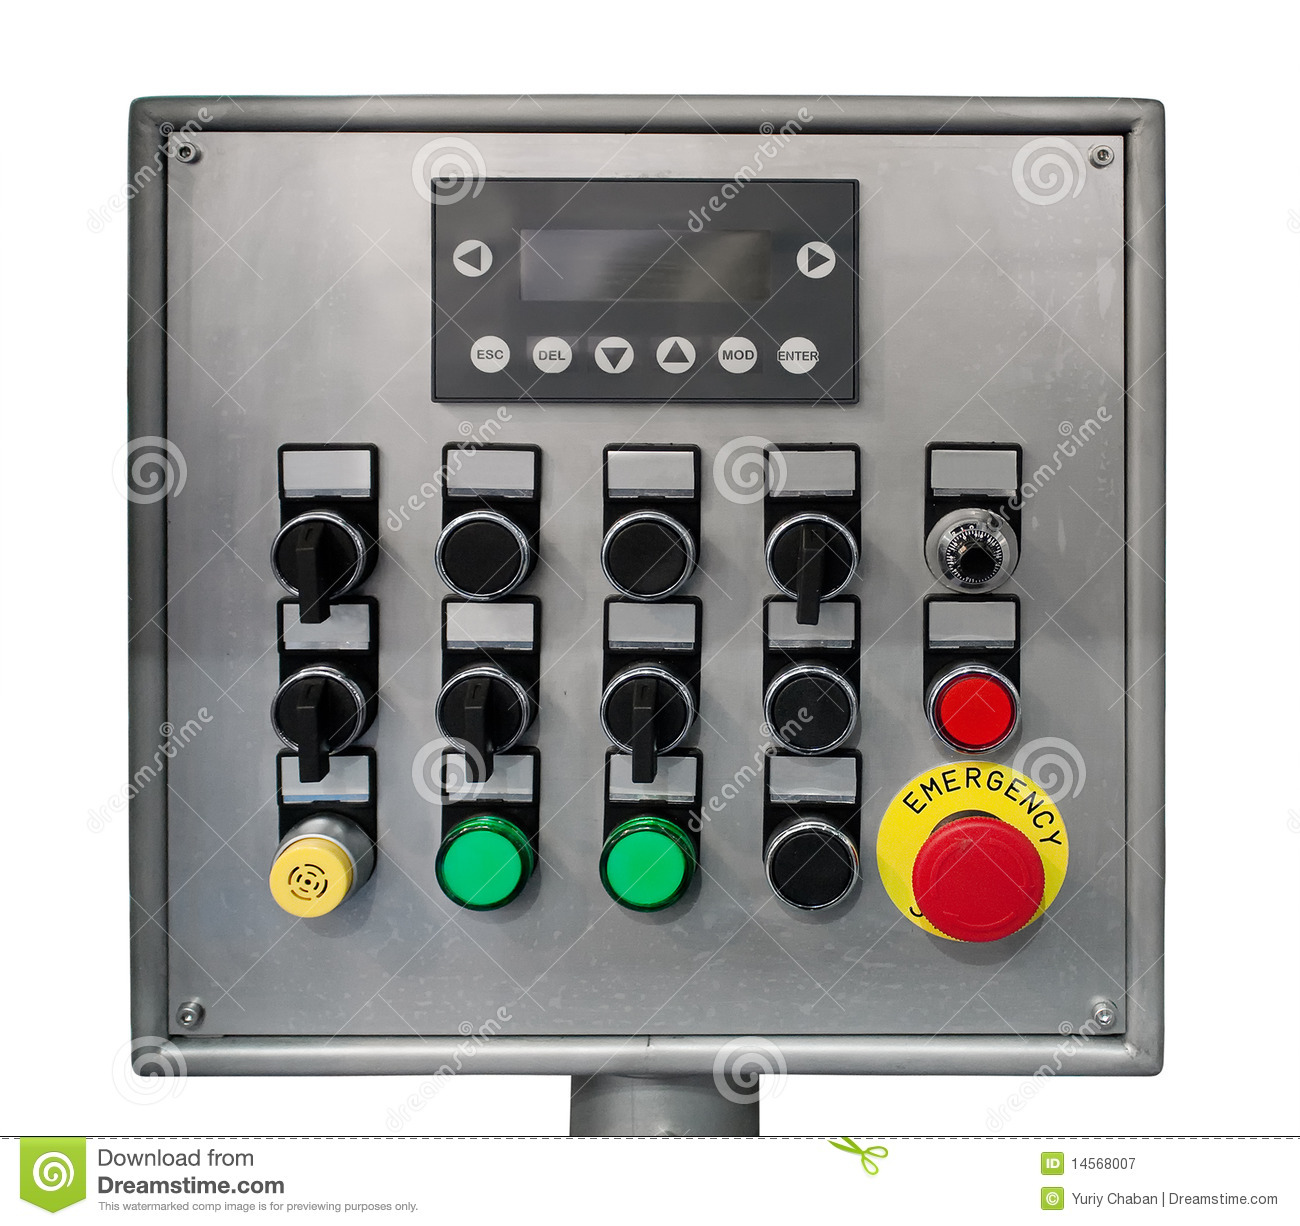 Modern Industrial Control Panel Royalty Free Stock Photography   Image